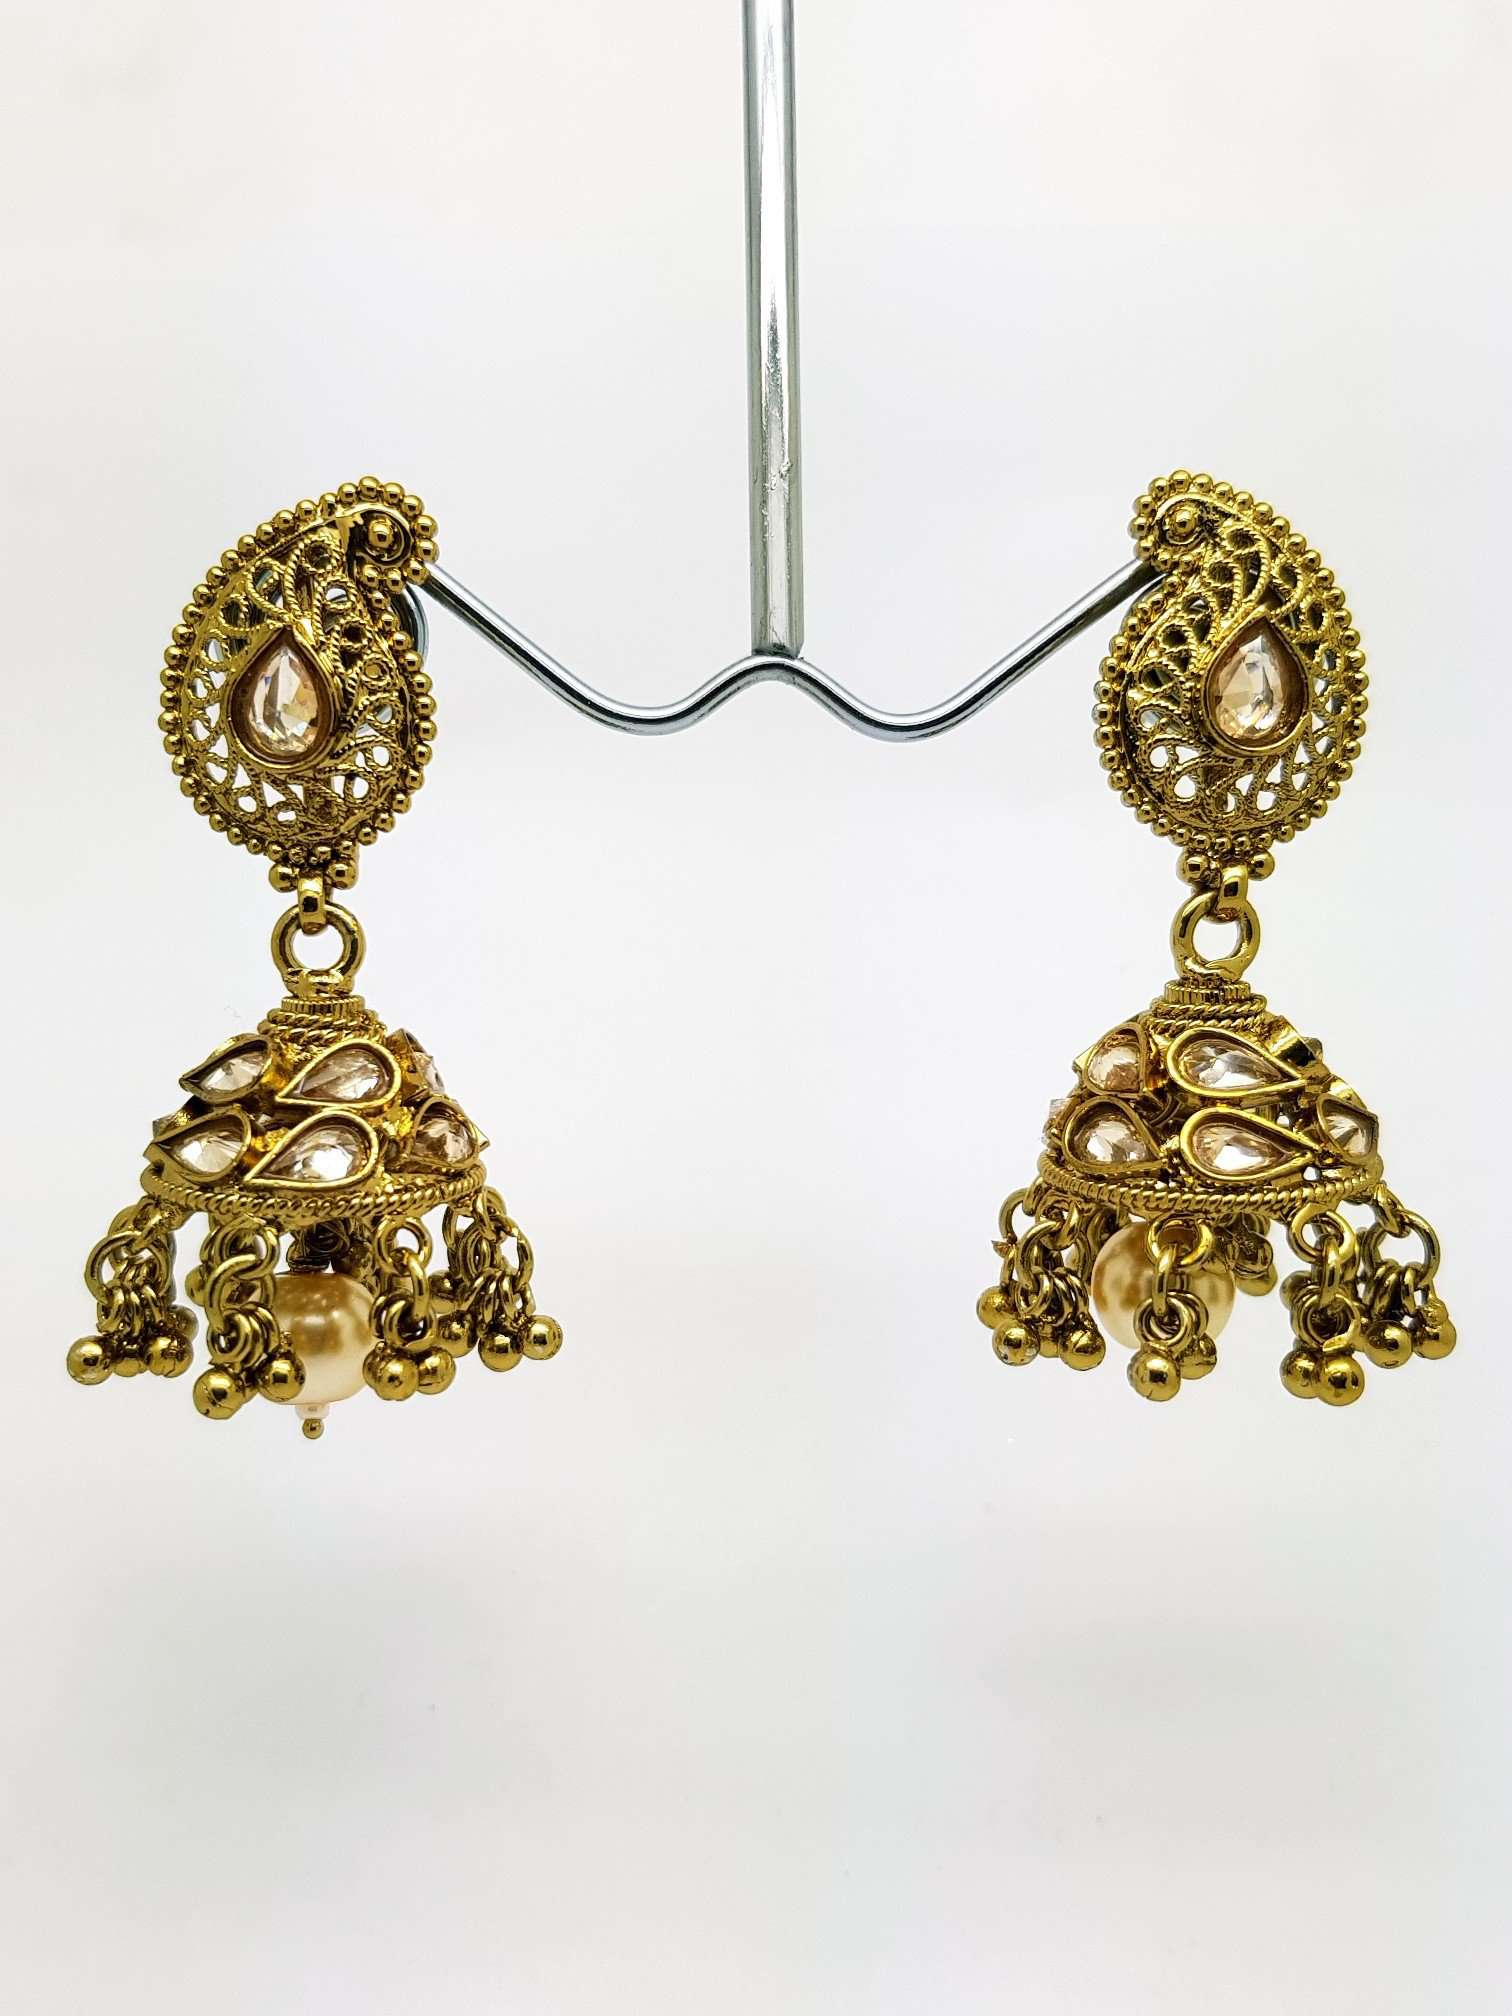 Reverse Stone Medium Jhumki Earrings - Bollywood - Fancy Dress - KAJ578TP 0918 - Prachy Creations